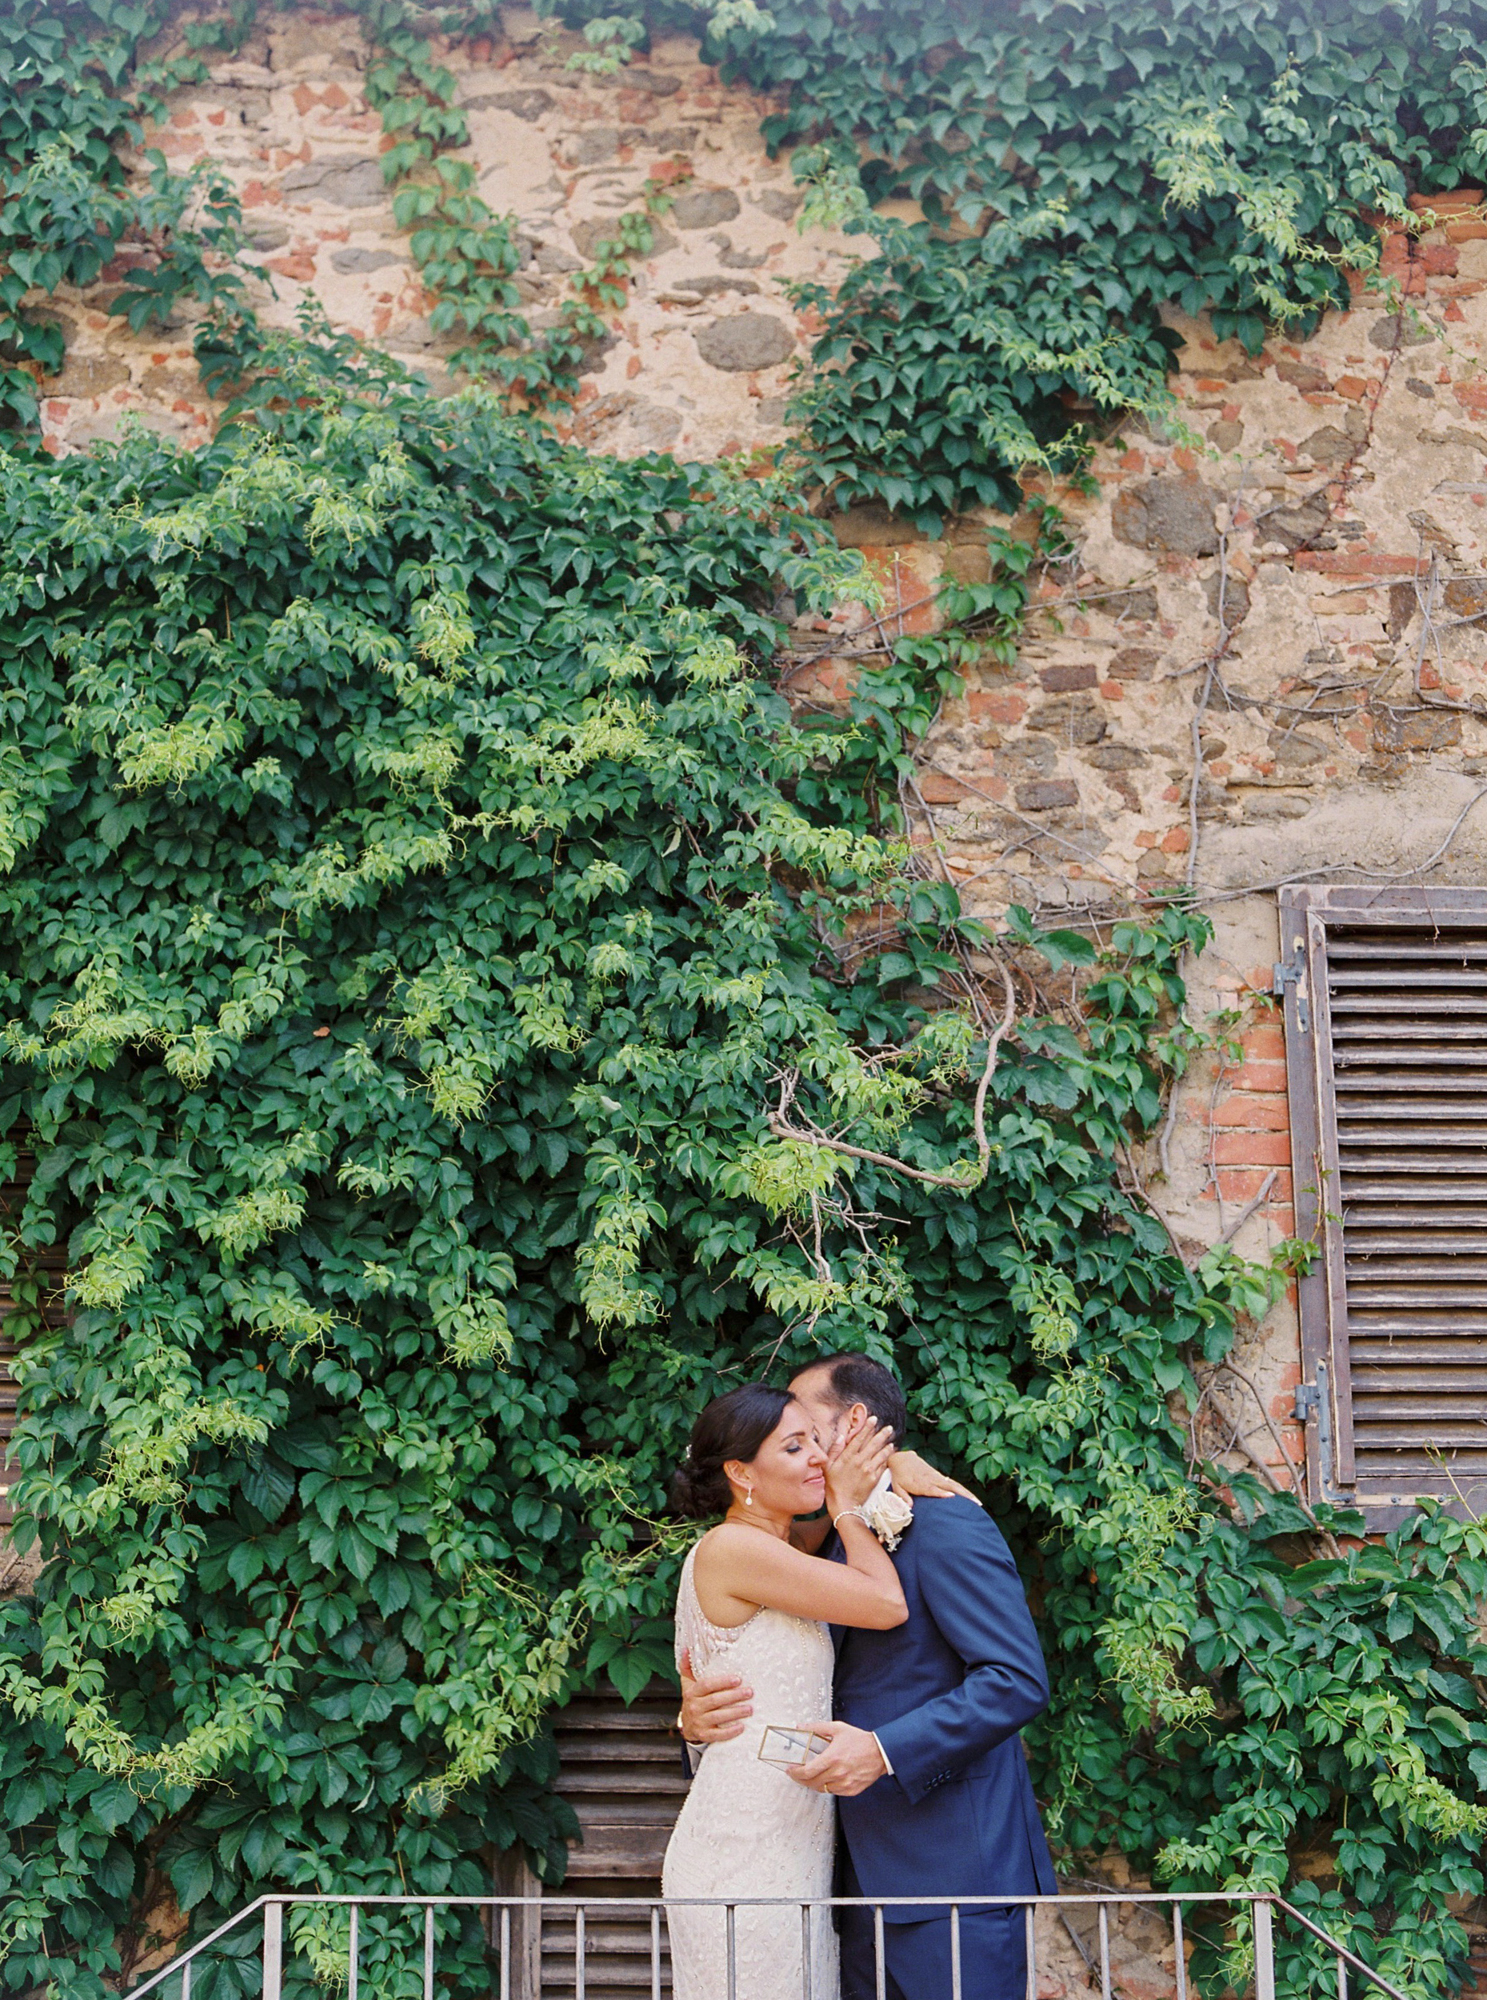 Destination wedding photographer _ fotografo de casamento _ elopement _ wedding photographer _ europe wedding _ love is my favorite color 07.jpg